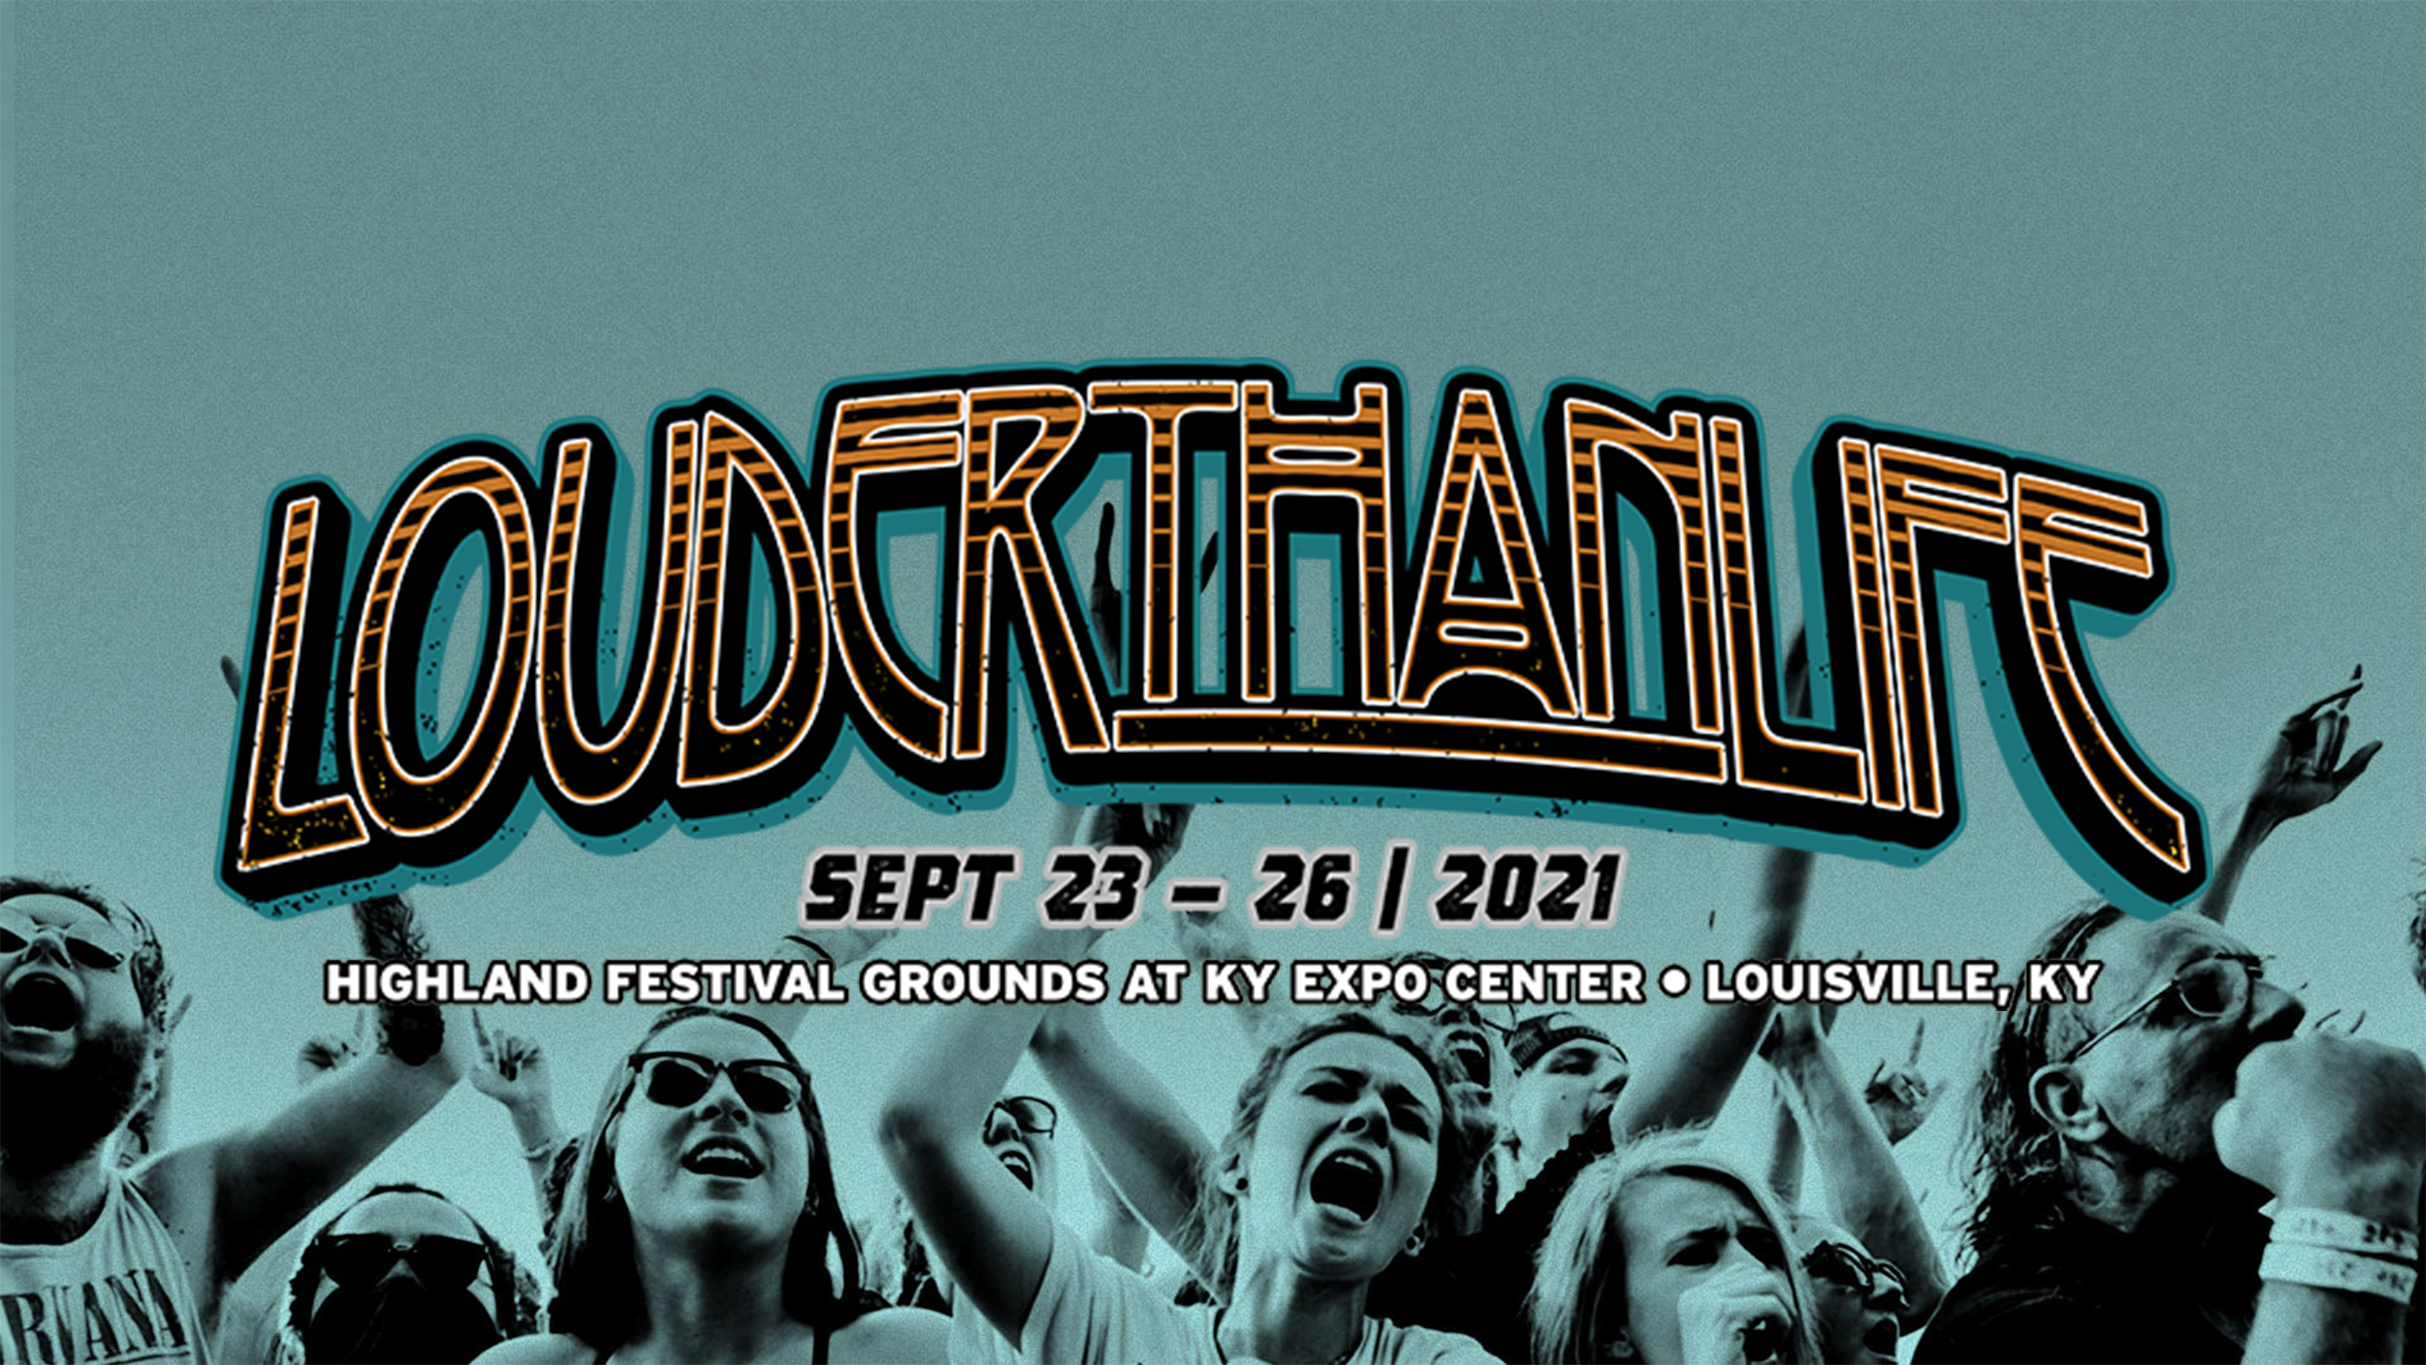 LOUDER THAN LIFE | SEPTEMBER 23-26, 2021 | TICKETS ON SALE NOW